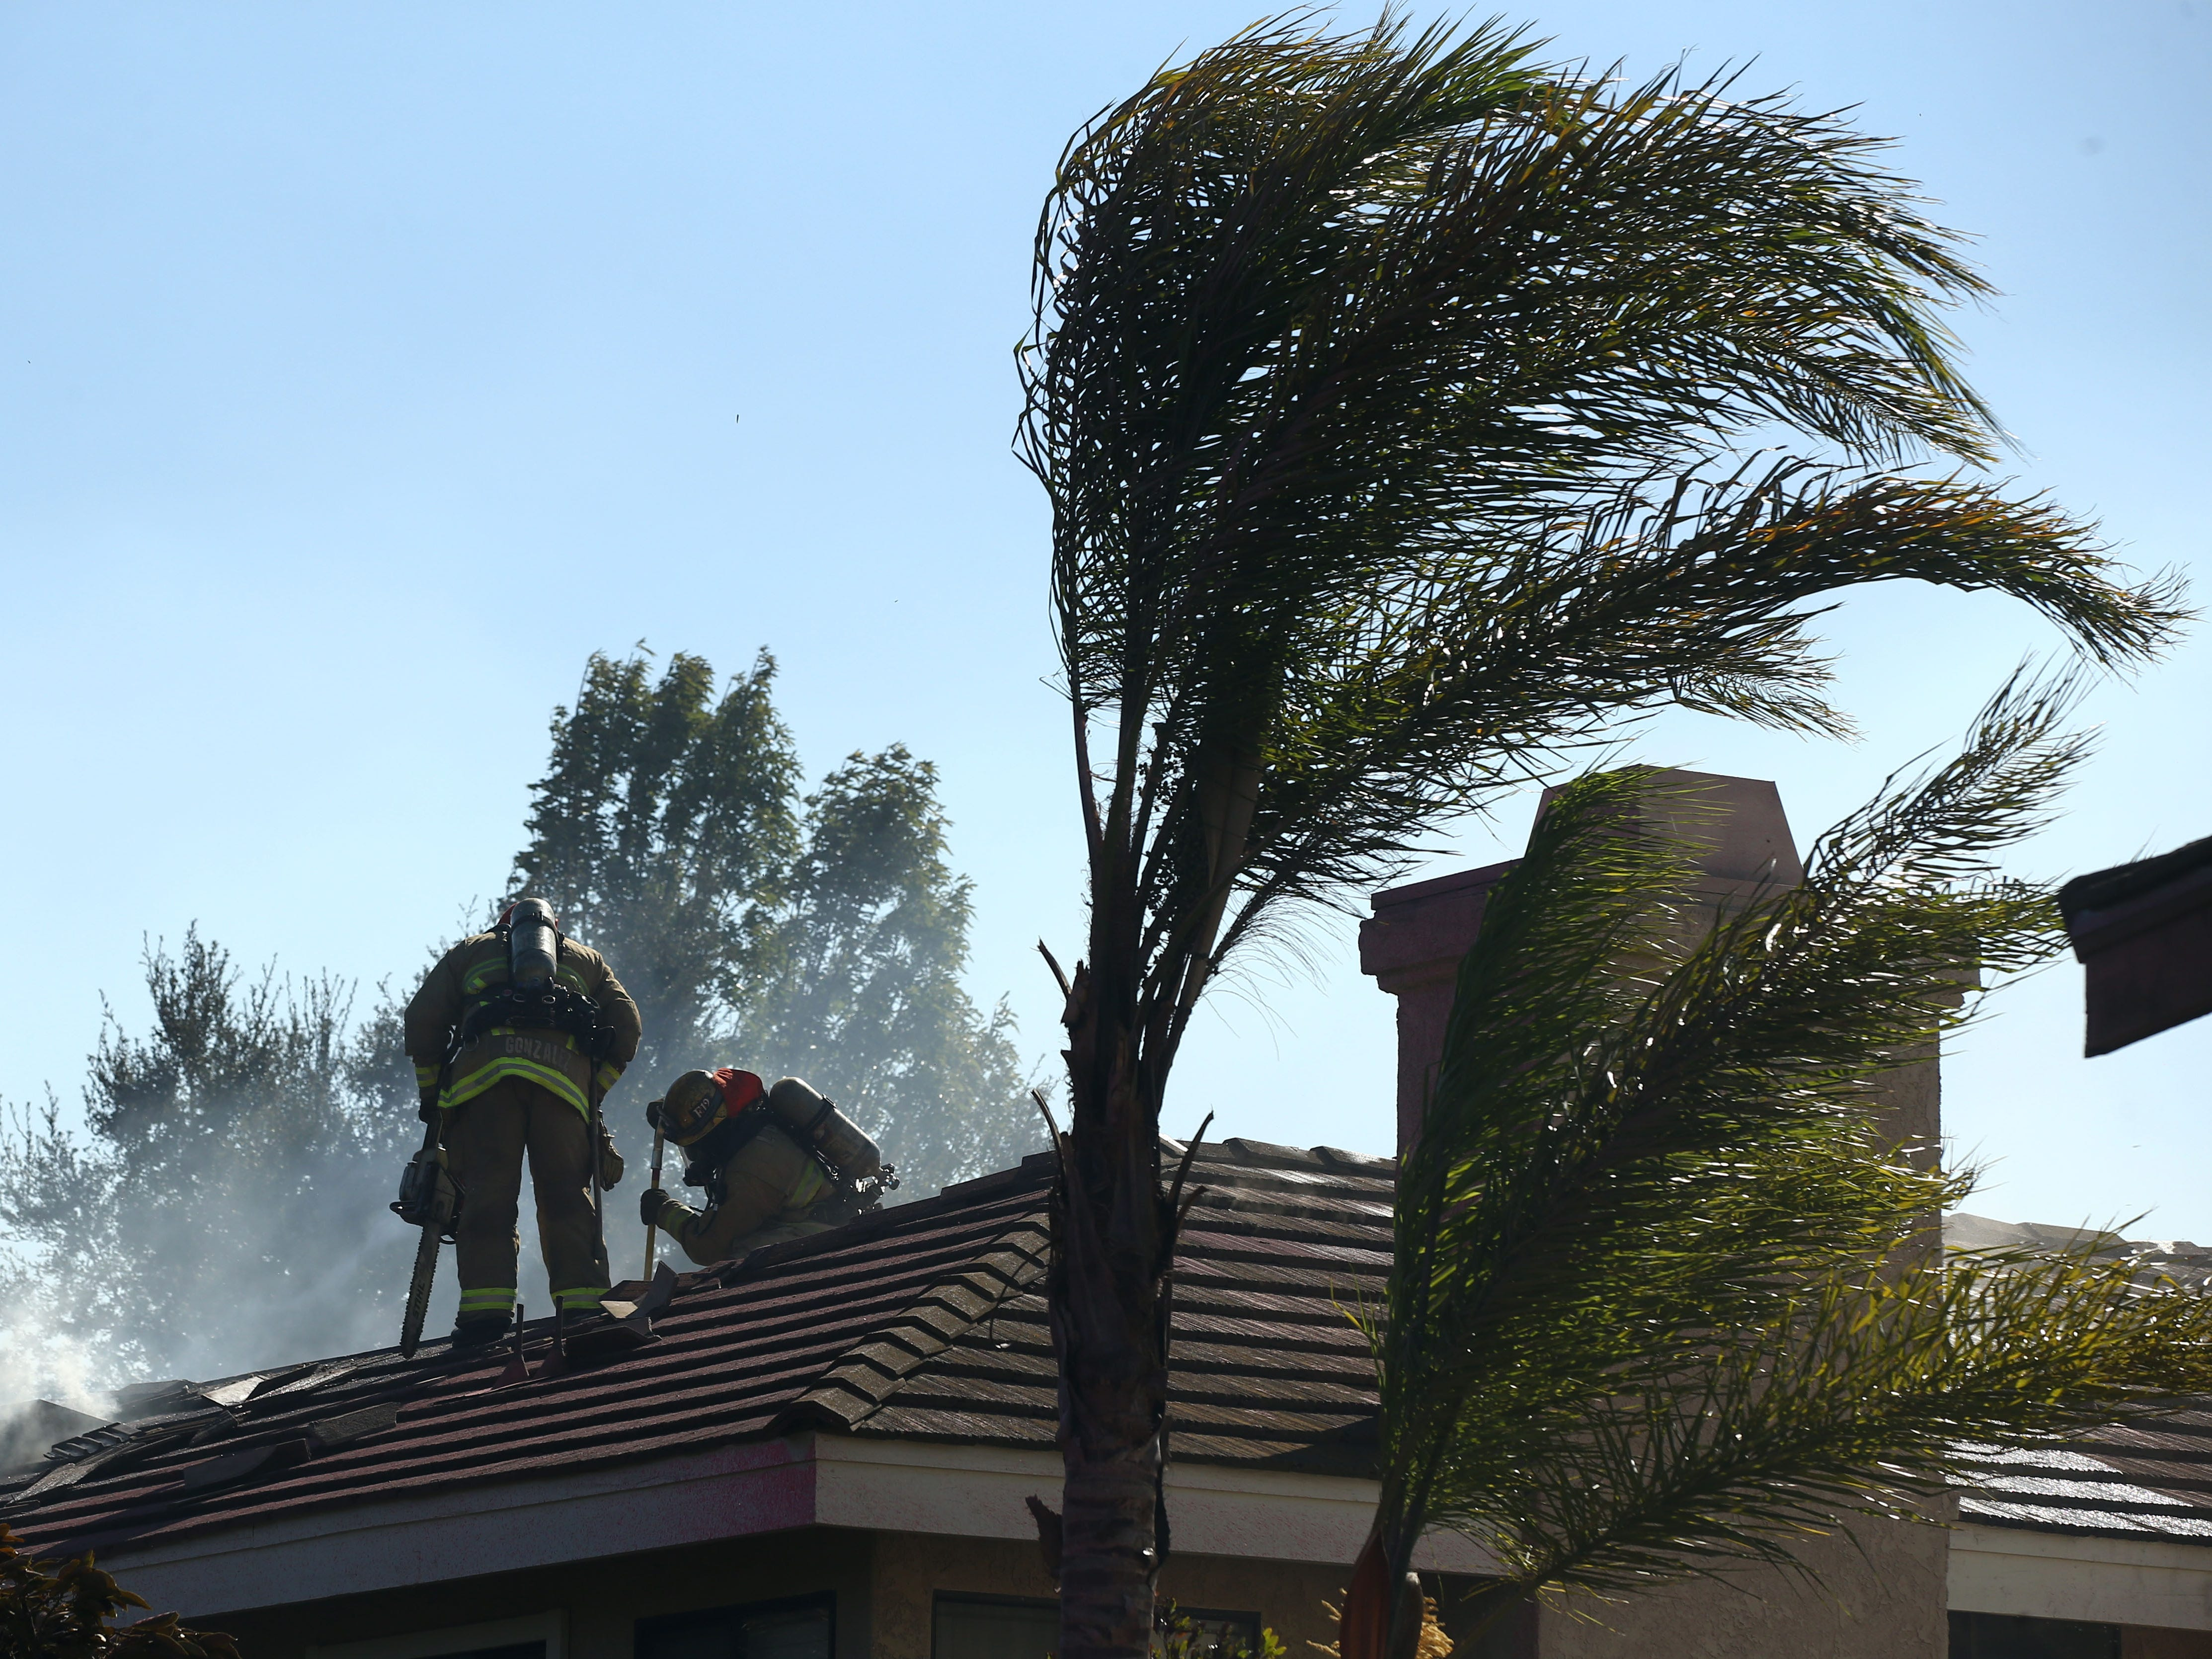 Firefighters put out a fire on a roof as the Hill Fire burns on Nov. 12, 2018, in Thousand Oaks, Calif.